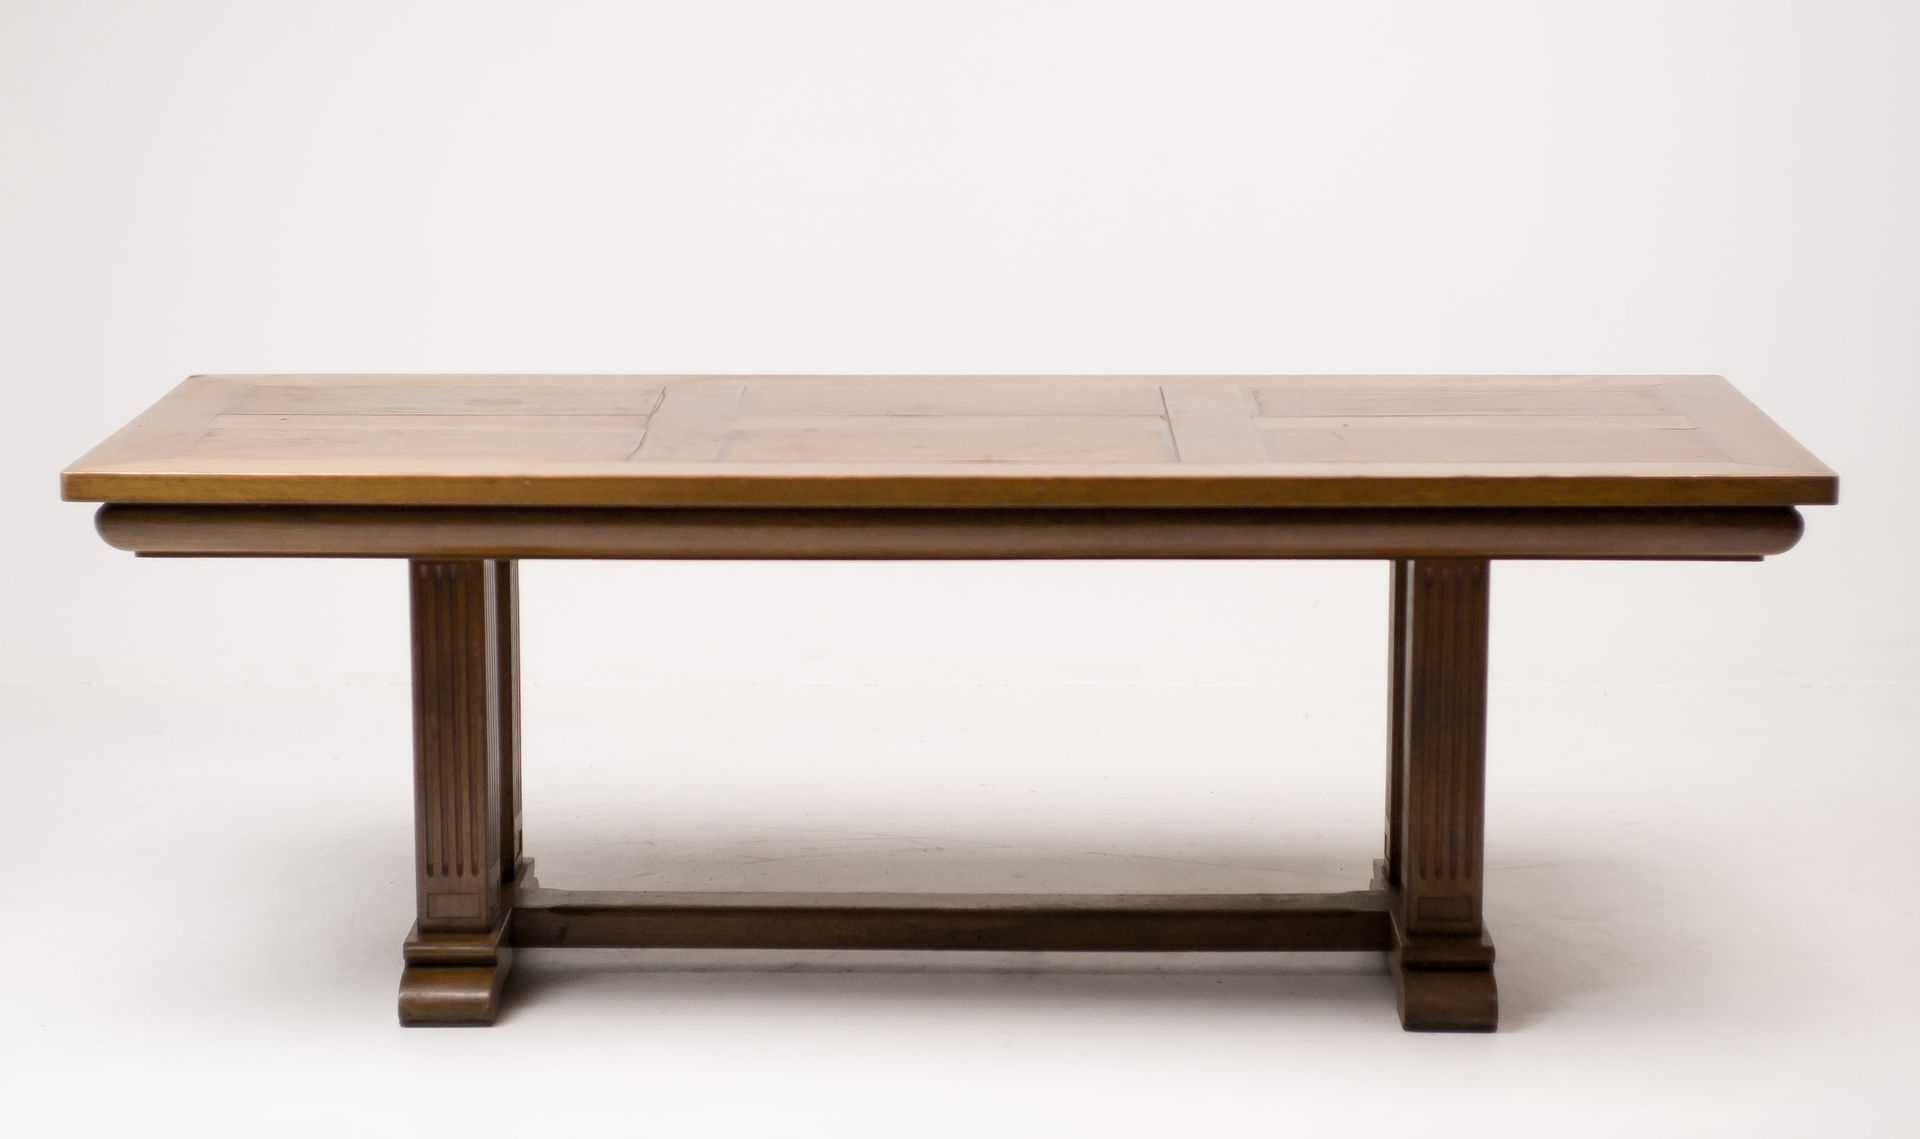 Fashionable Oak Dining Tables For Architectural Oak Dining Table, 1920S For Sale At Pamono (View 23 of 25)